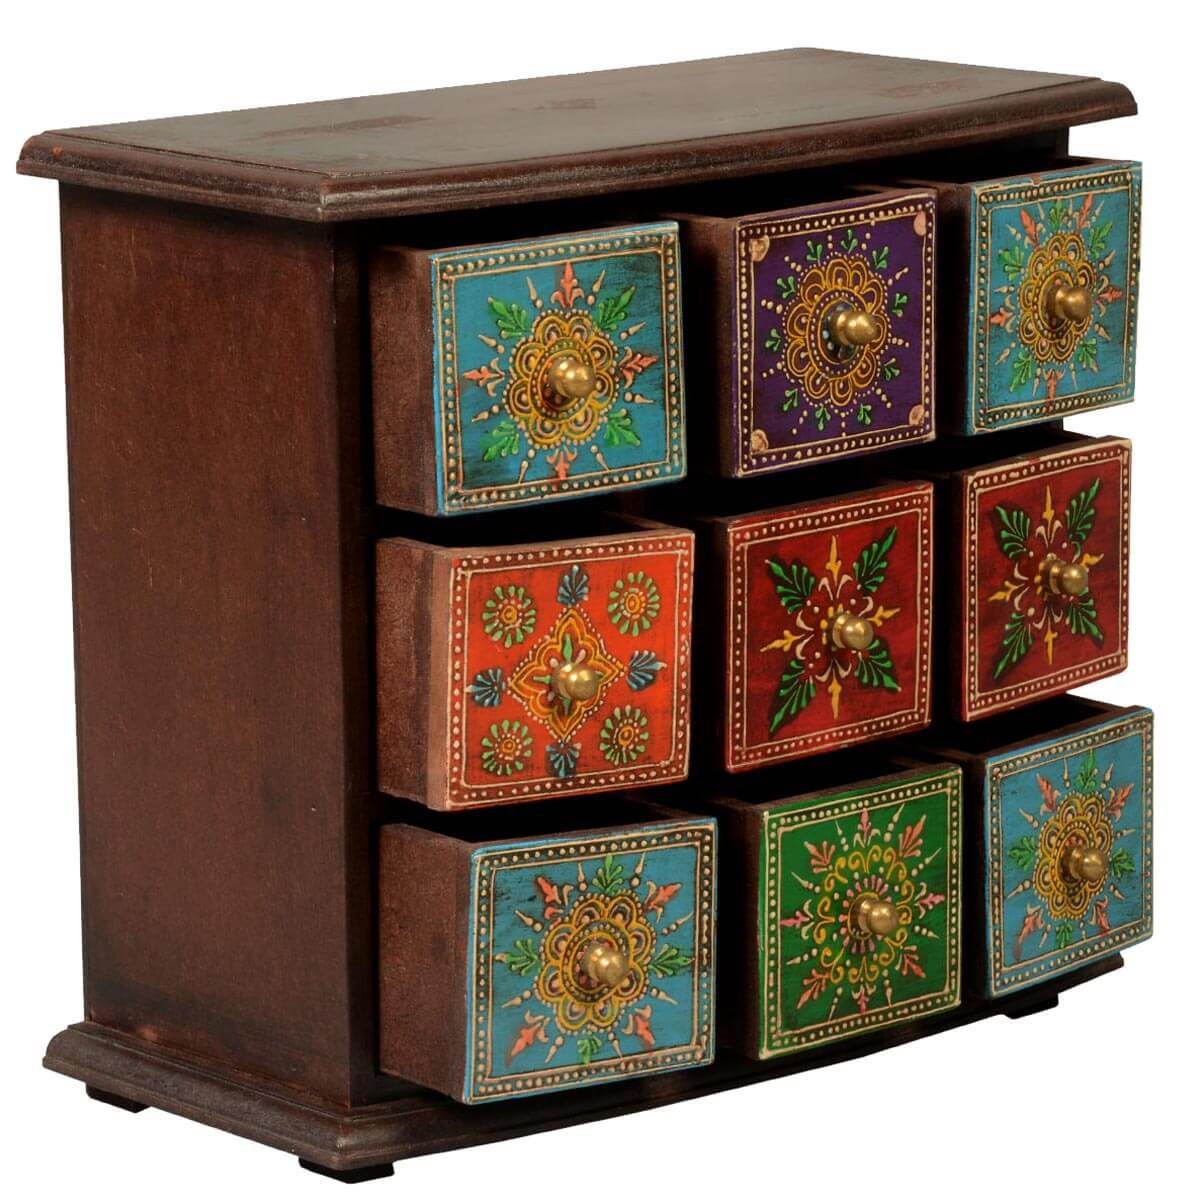 pidgeon hole mango wood 9 drawer hand painted jewelry chest. Black Bedroom Furniture Sets. Home Design Ideas